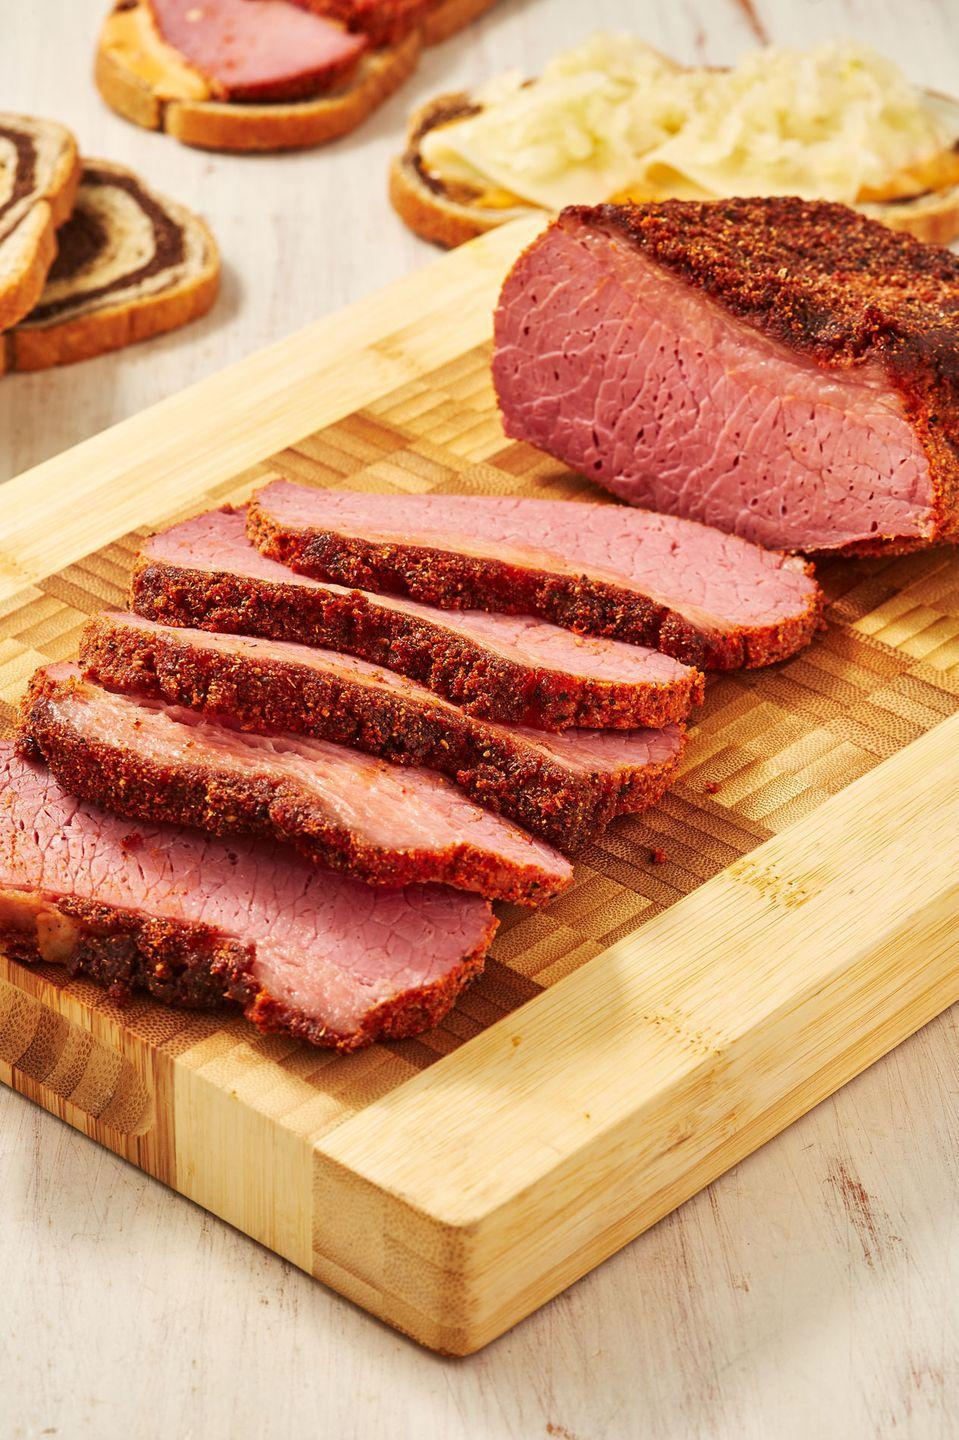 """<p>This might be the best corned beef EVER.</p><p>Get the recipe from <a href=""""https://www.delish.com/cooking/recipe-ideas/a30875688/smoked-corned-beef/"""" rel=""""nofollow noopener"""" target=""""_blank"""" data-ylk=""""slk:Delish."""" class=""""link rapid-noclick-resp"""">Delish. </a></p>"""